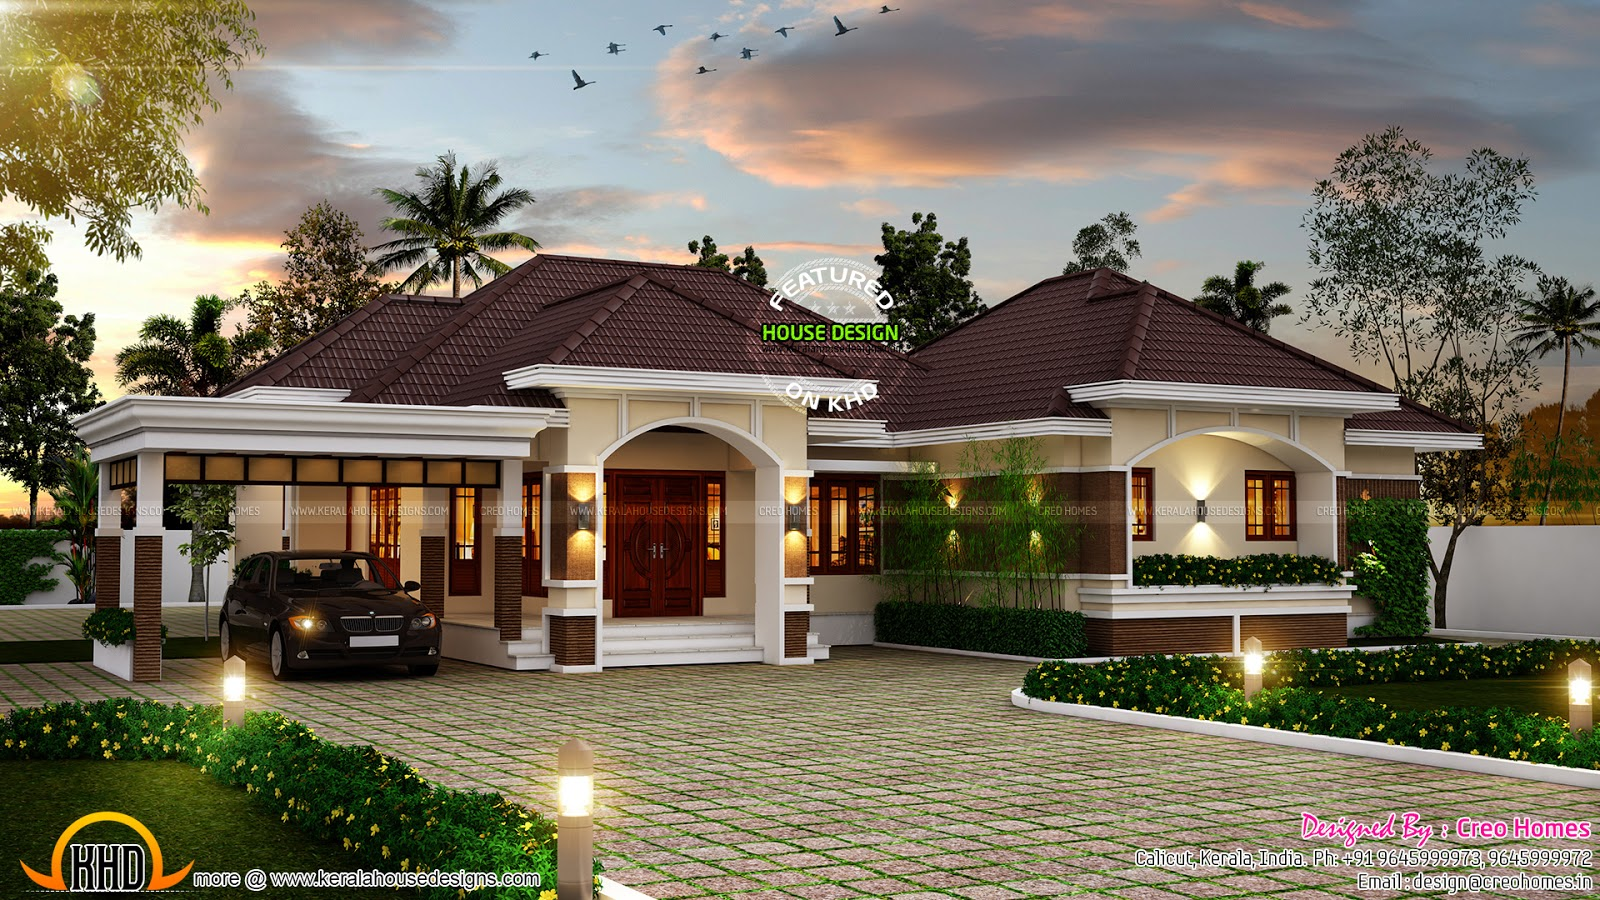 Outstanding bungalow in kerala kerala home design and for Elegant home design